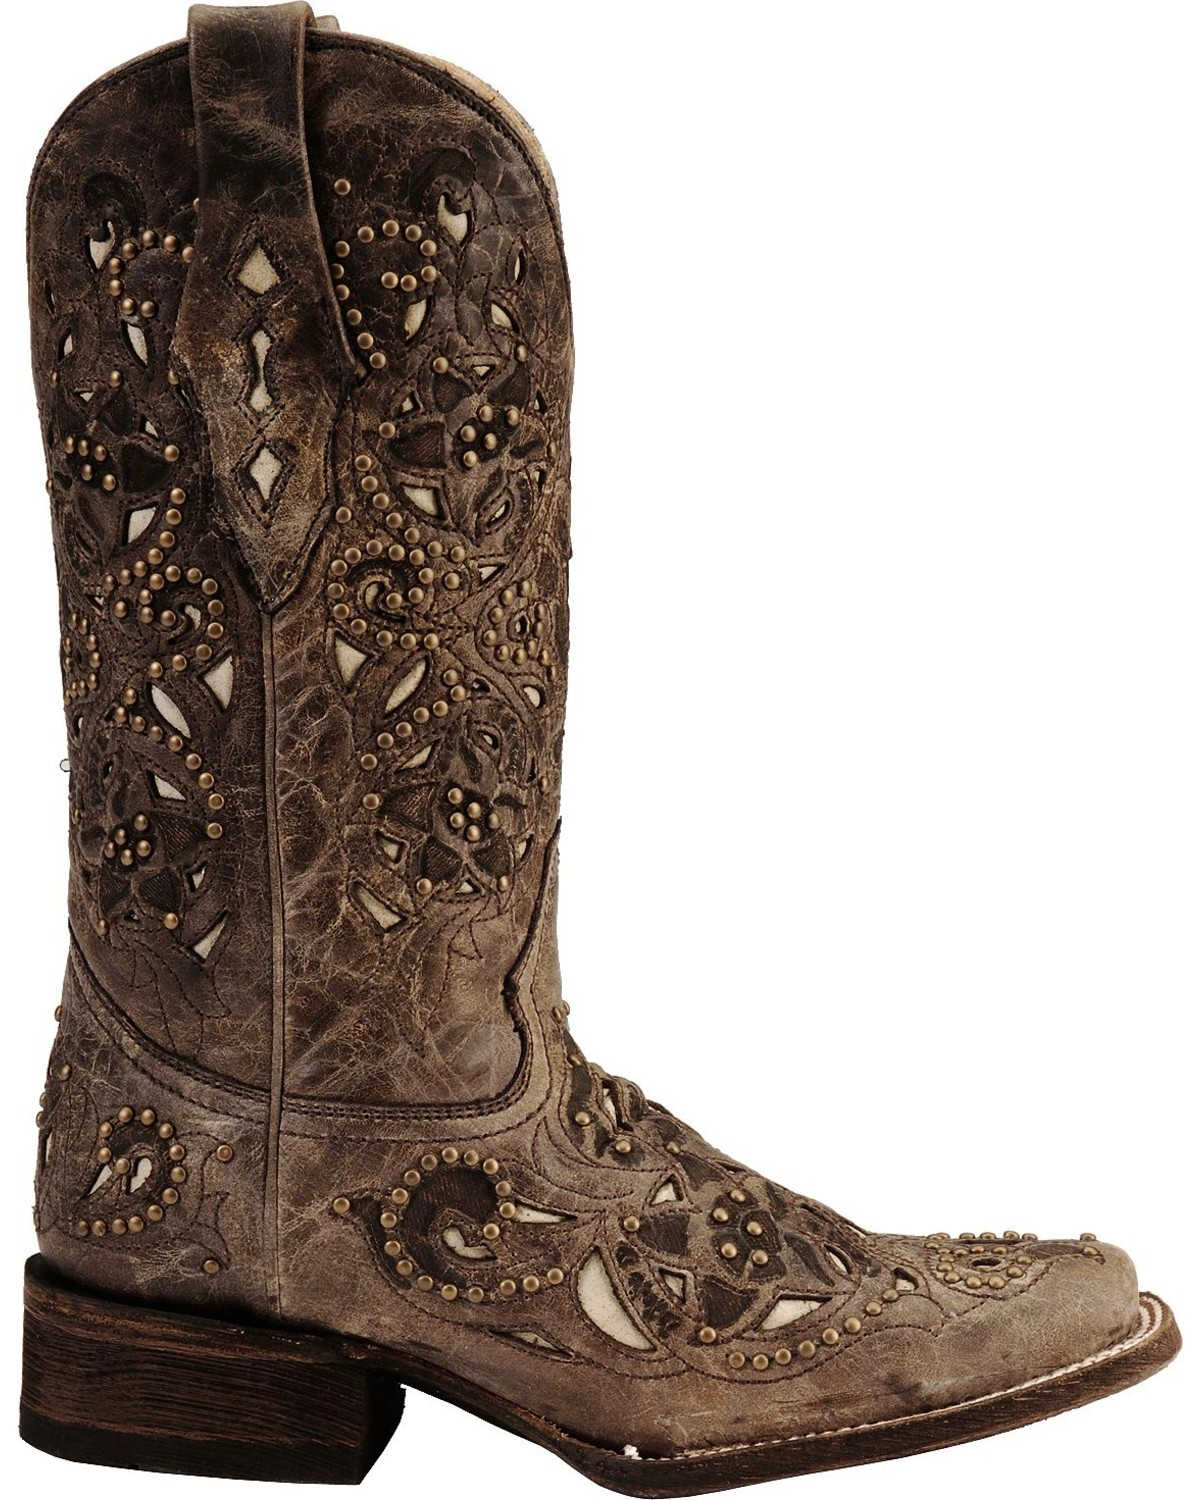 Perfect Corral Women's Vintage Inlay and Stud Square Toe Western Boots  ZG69